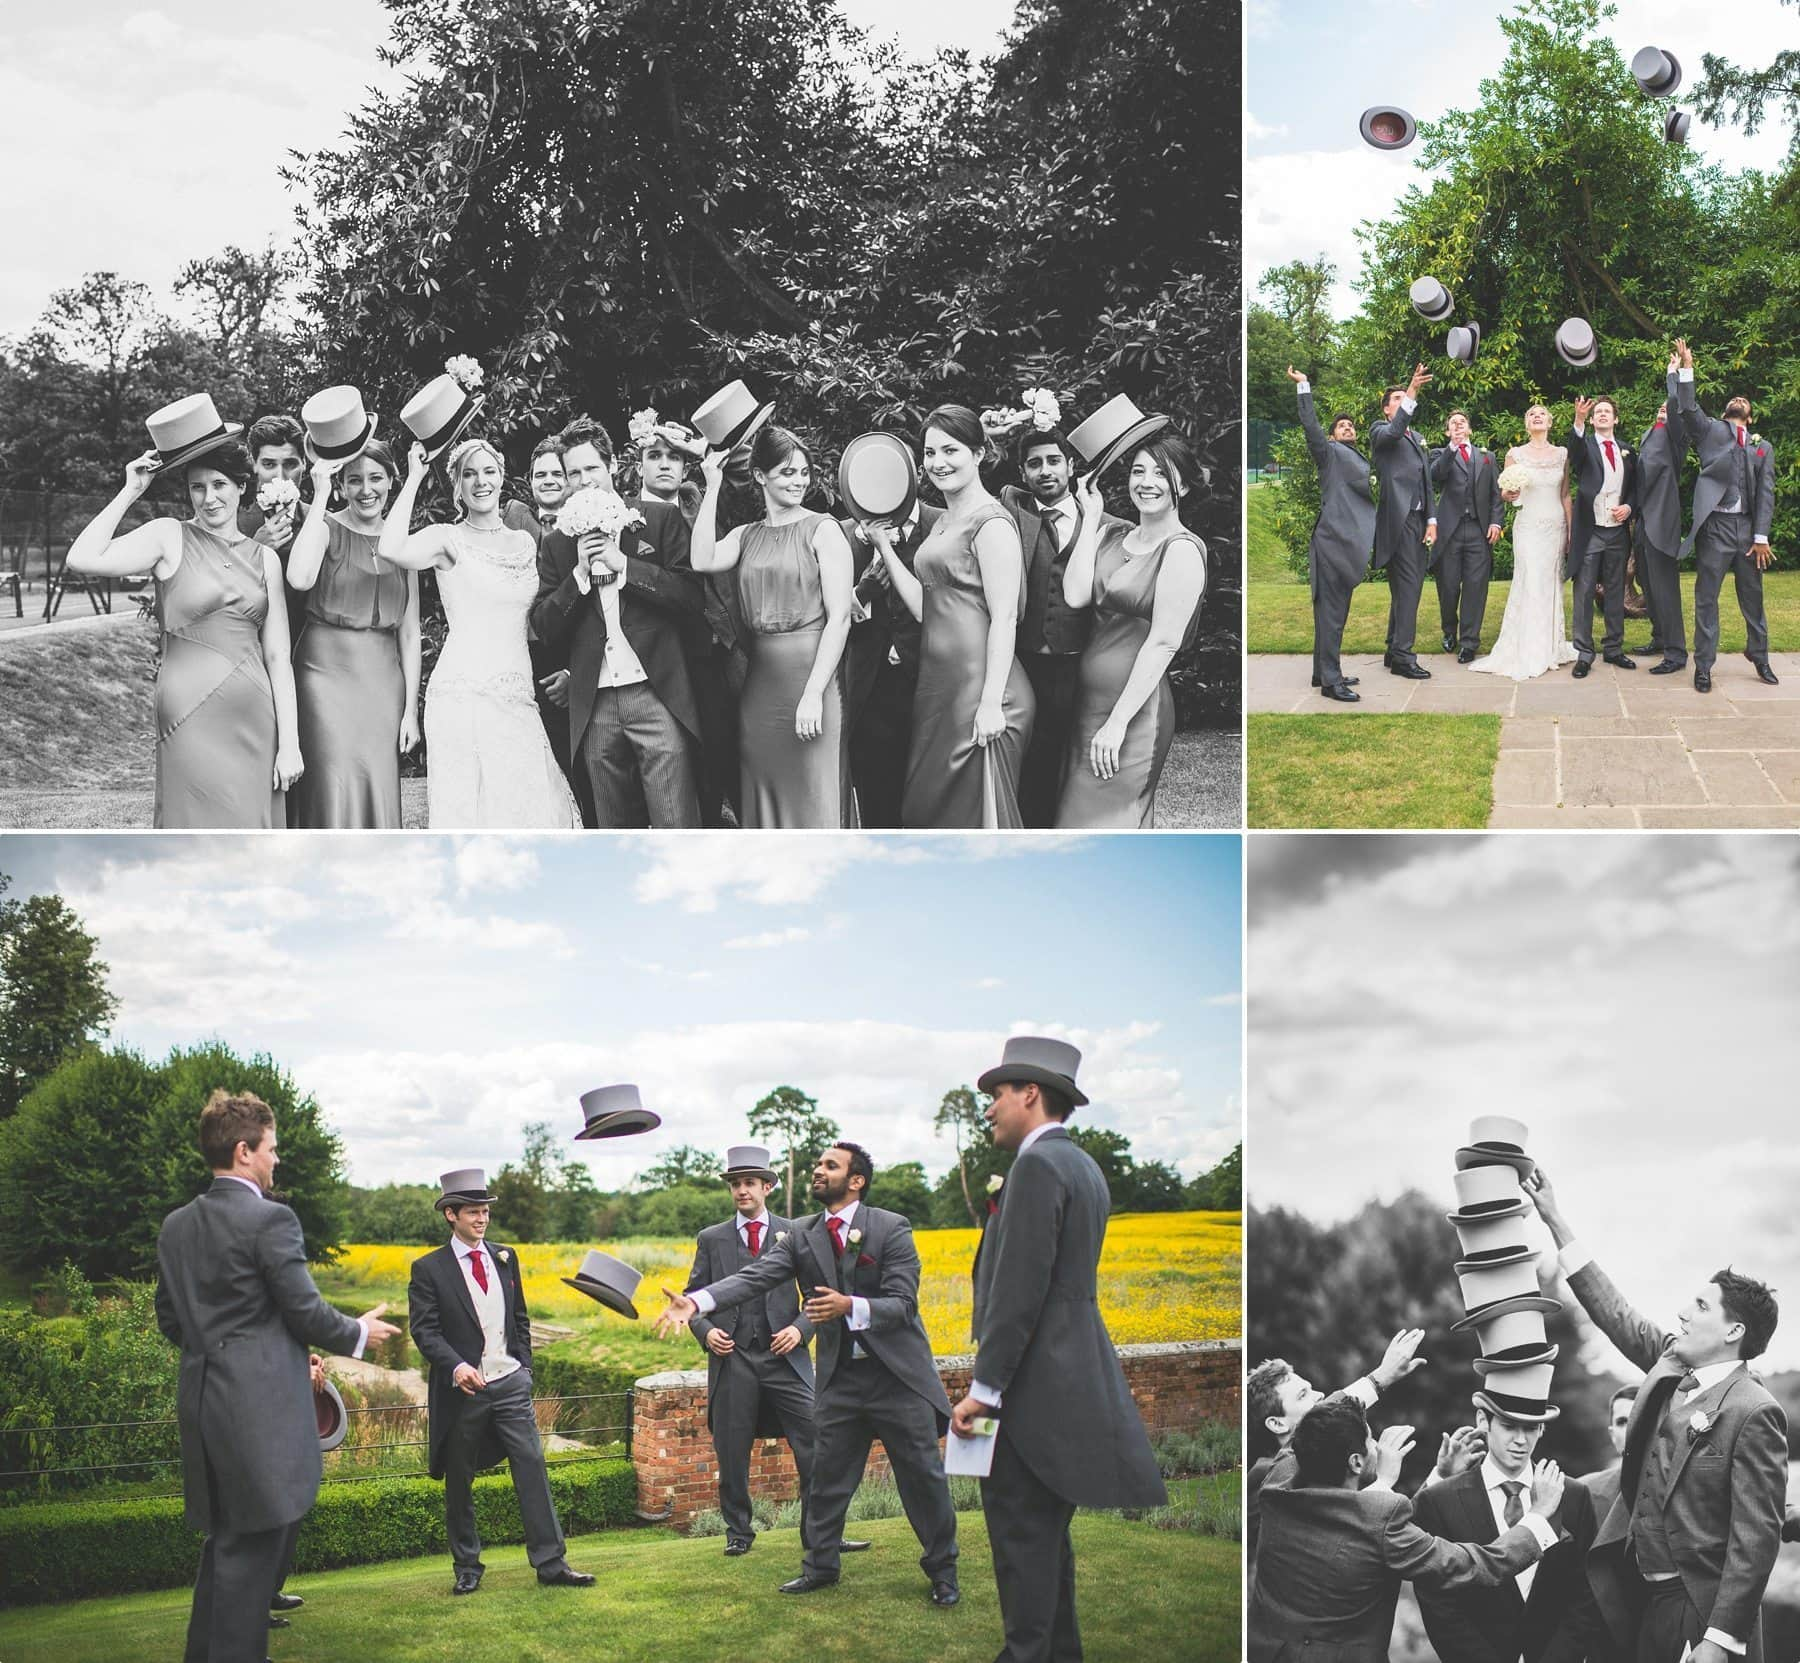 Bride groom bridesmaids and ushers playing with traditional top hats at this coworth park Barn summer wedding